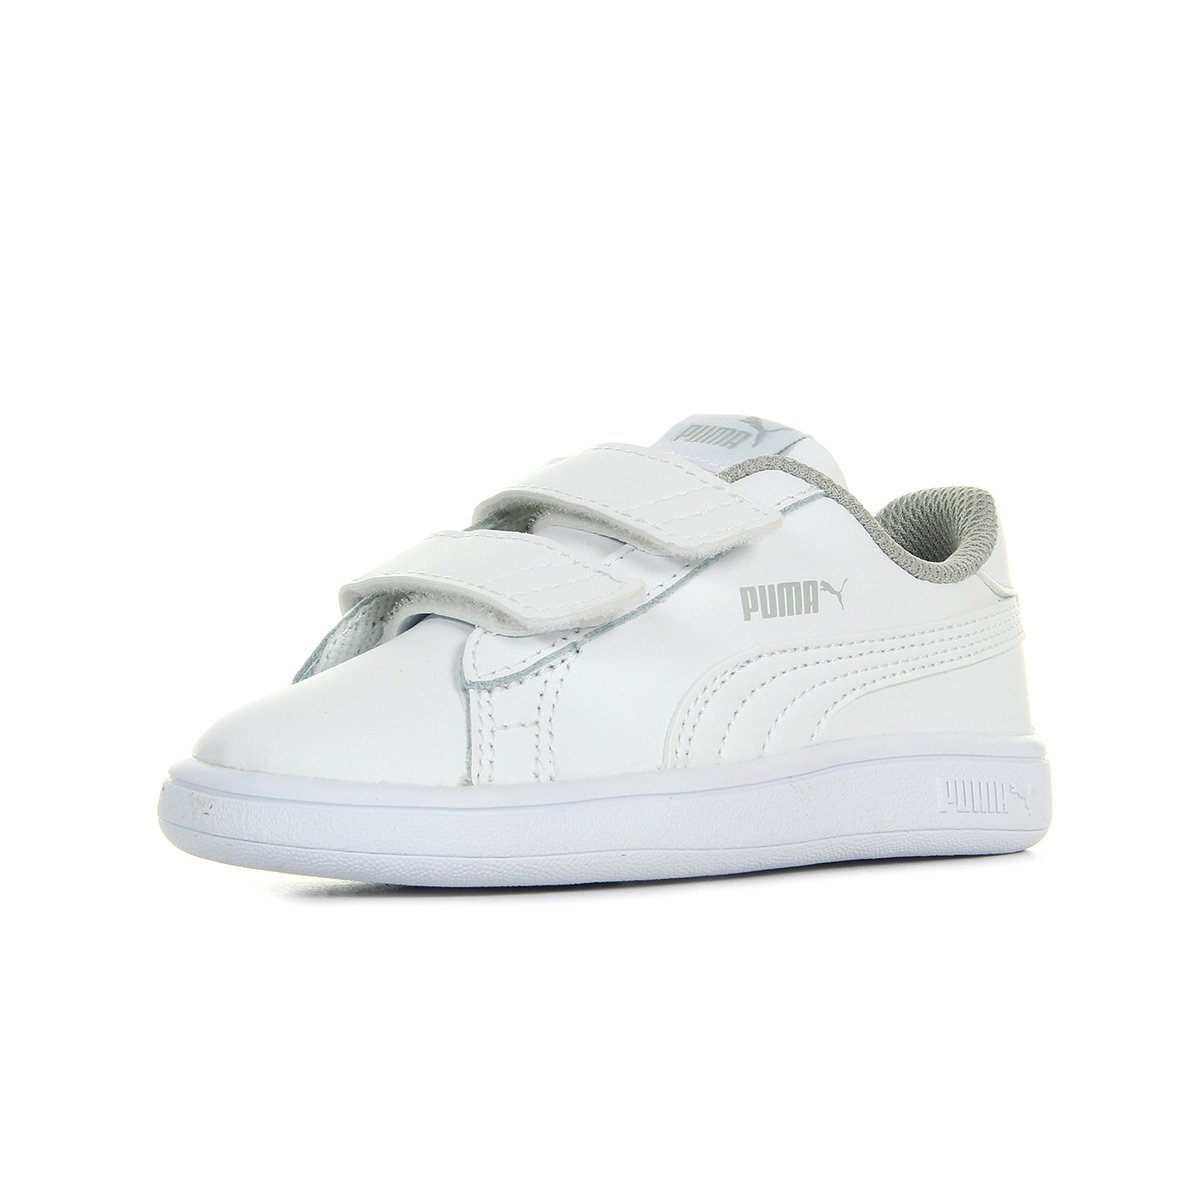 19c81d9696 Puma Unisex Babies' Smash V2 L V Inf Low-Top Sneakers: Amazon.co.uk ...